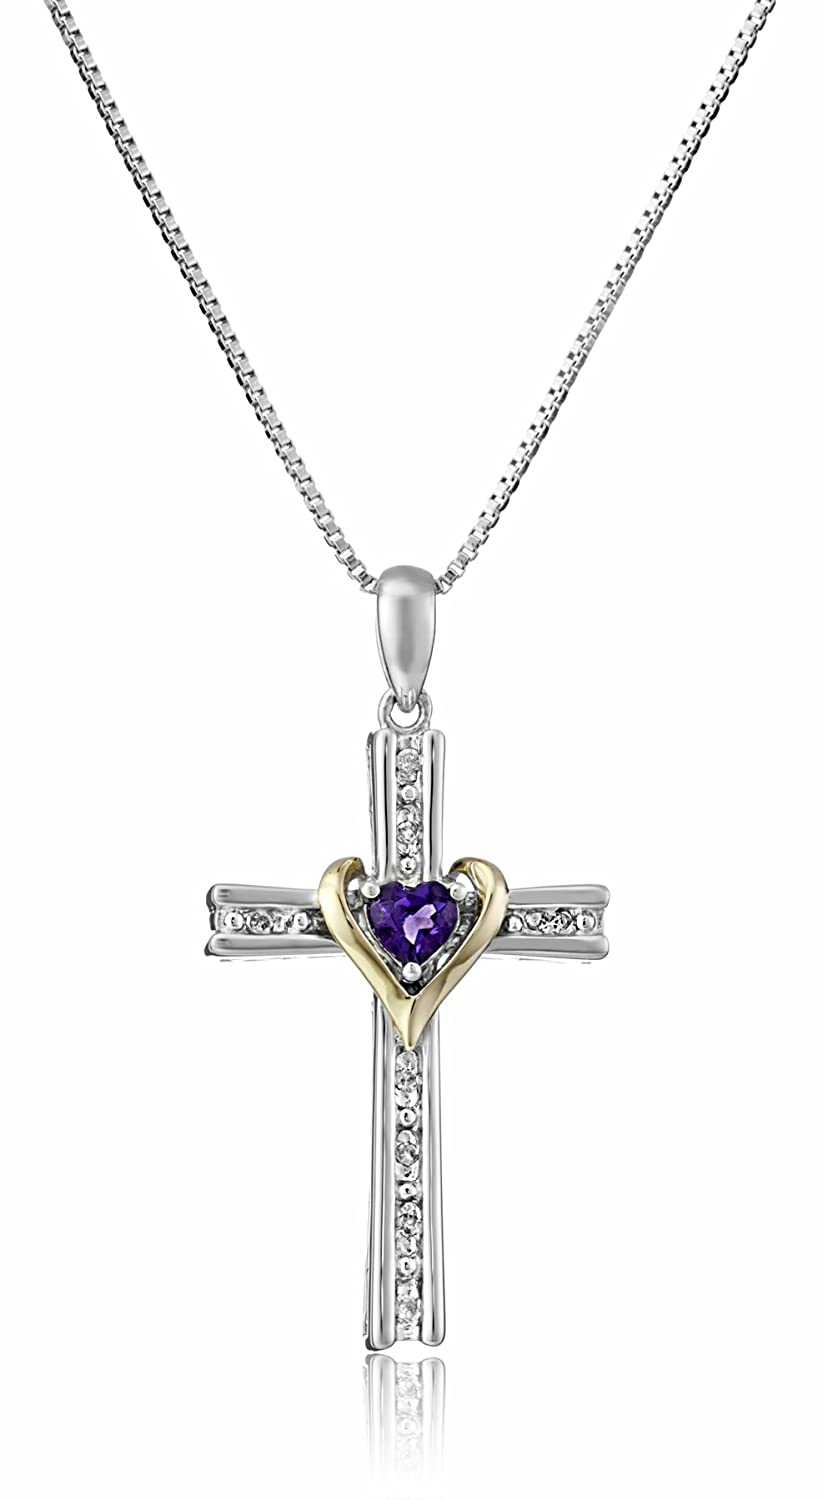 f32552a674cb2 Sterling Silver and 14k Gold Cross Pendant Necklace, 18